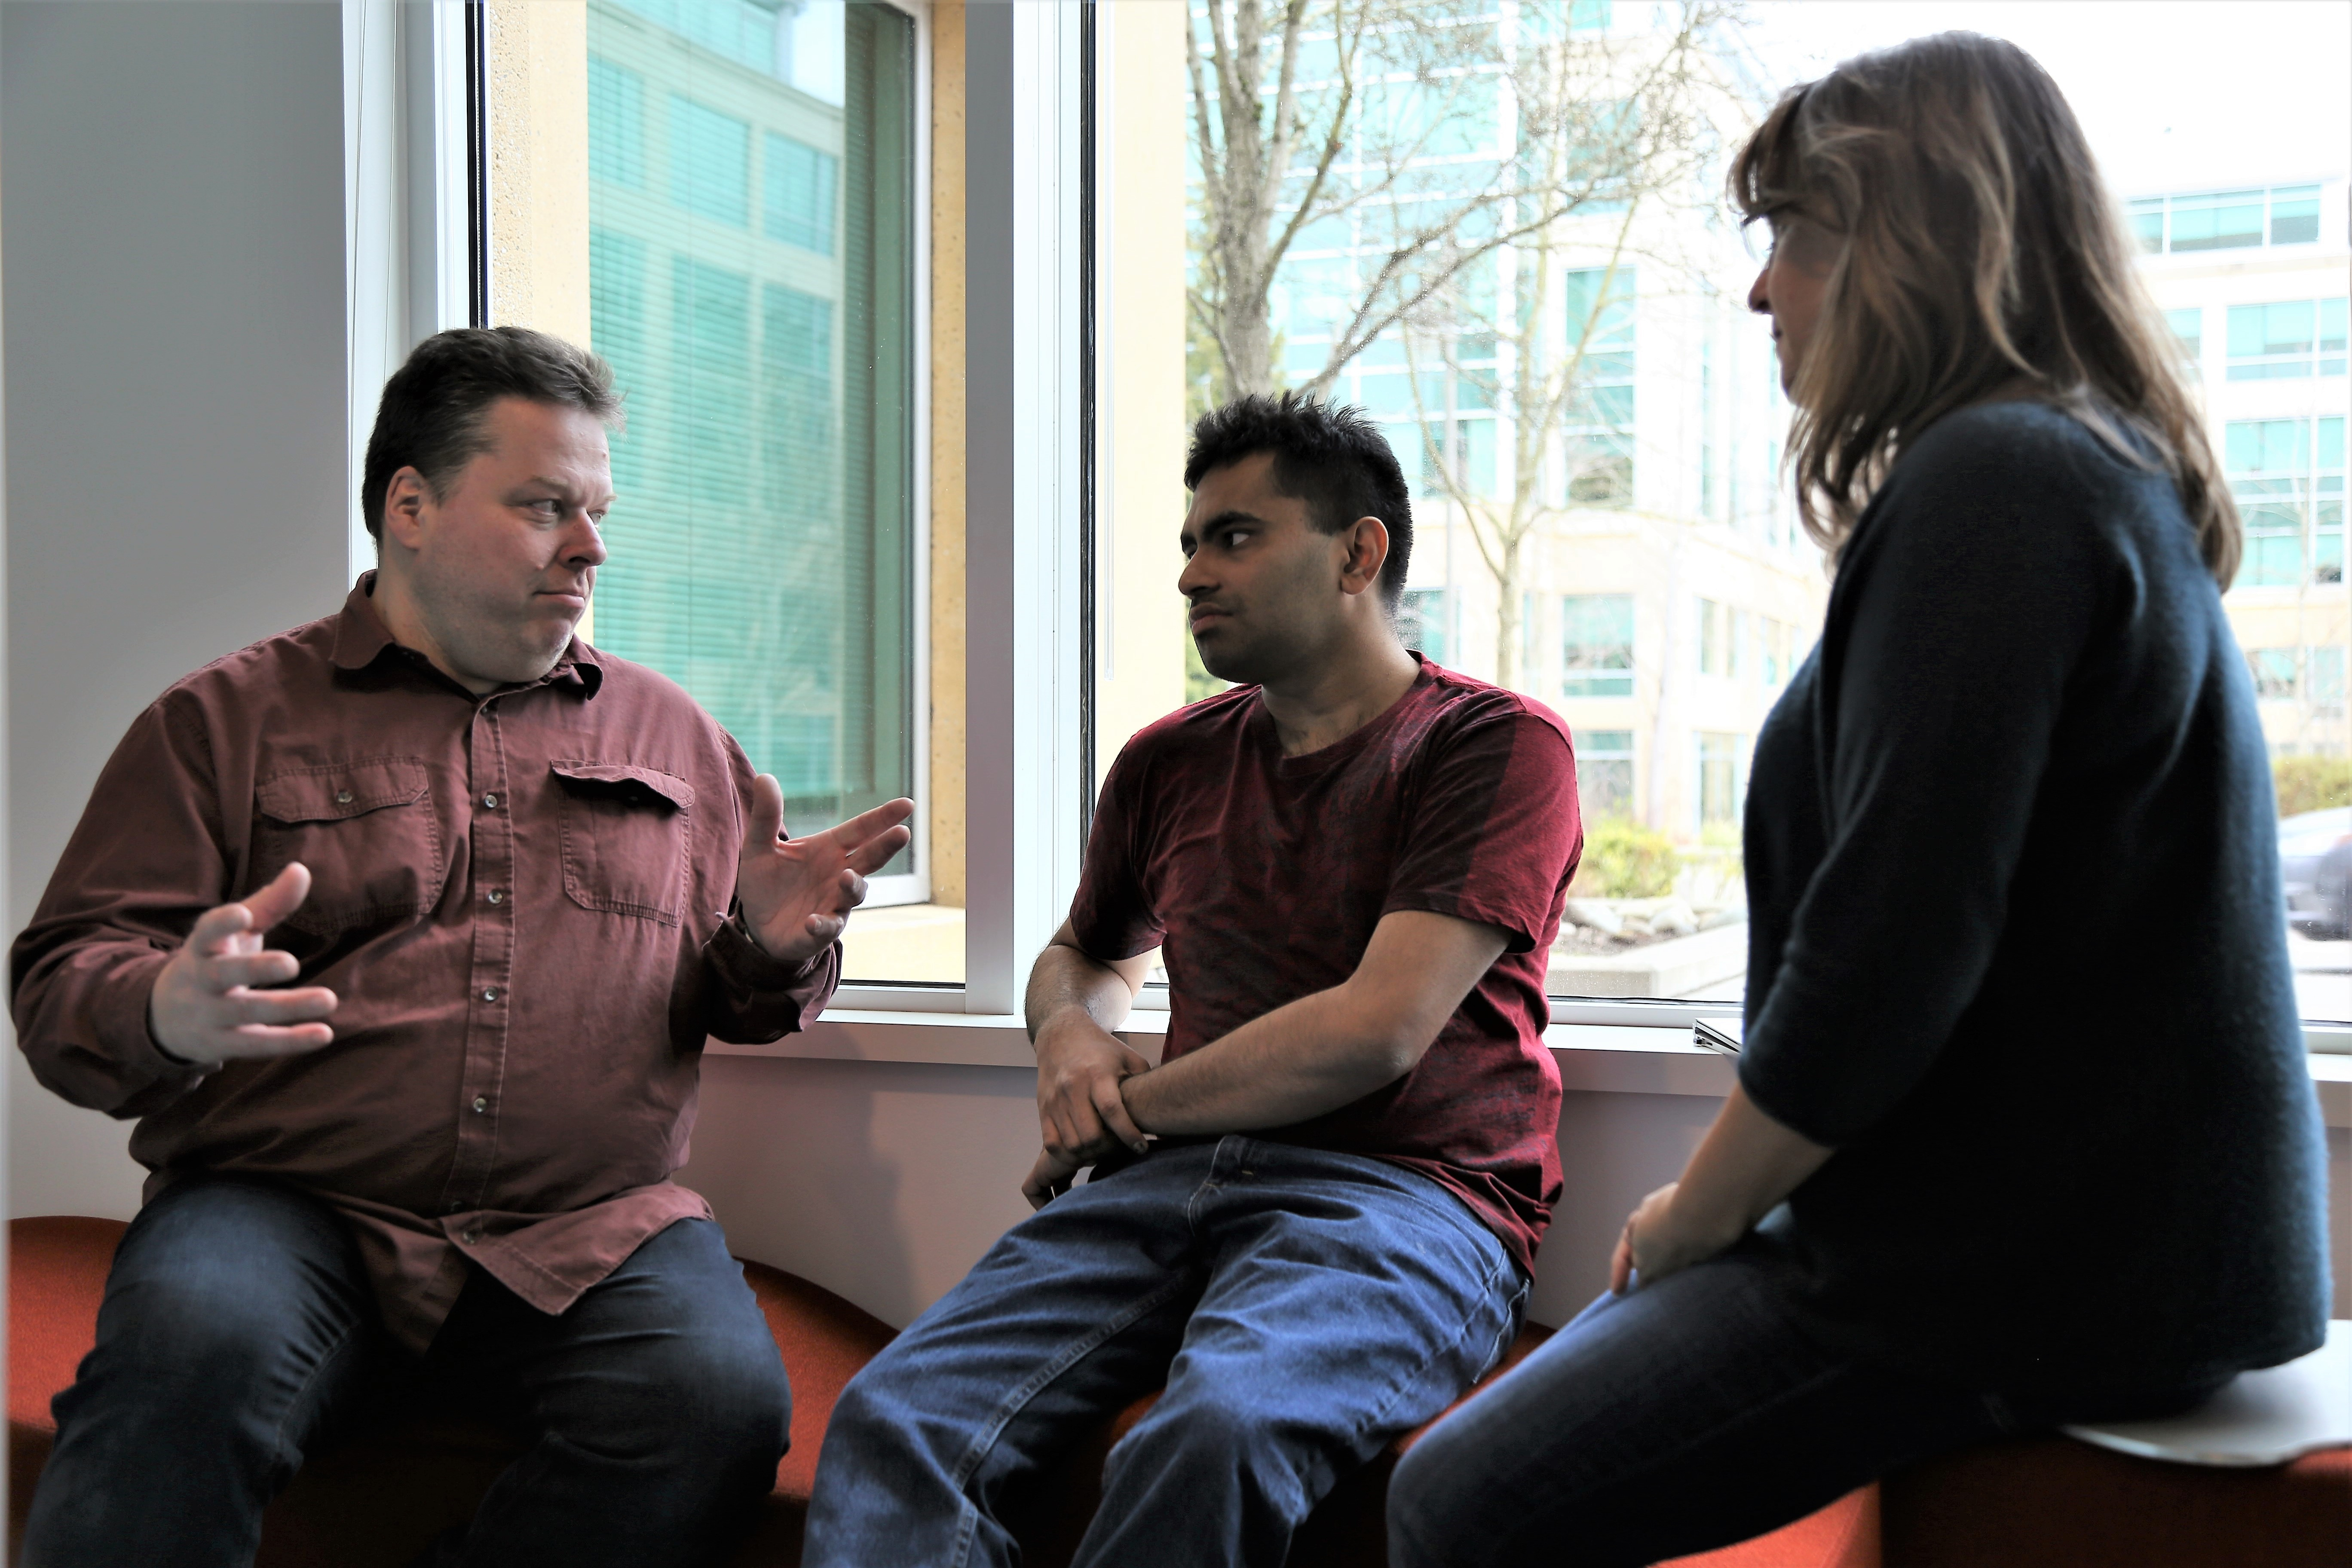 Hans Reutter talks with members of his team while sitting in front of a window in a common space area in his building.